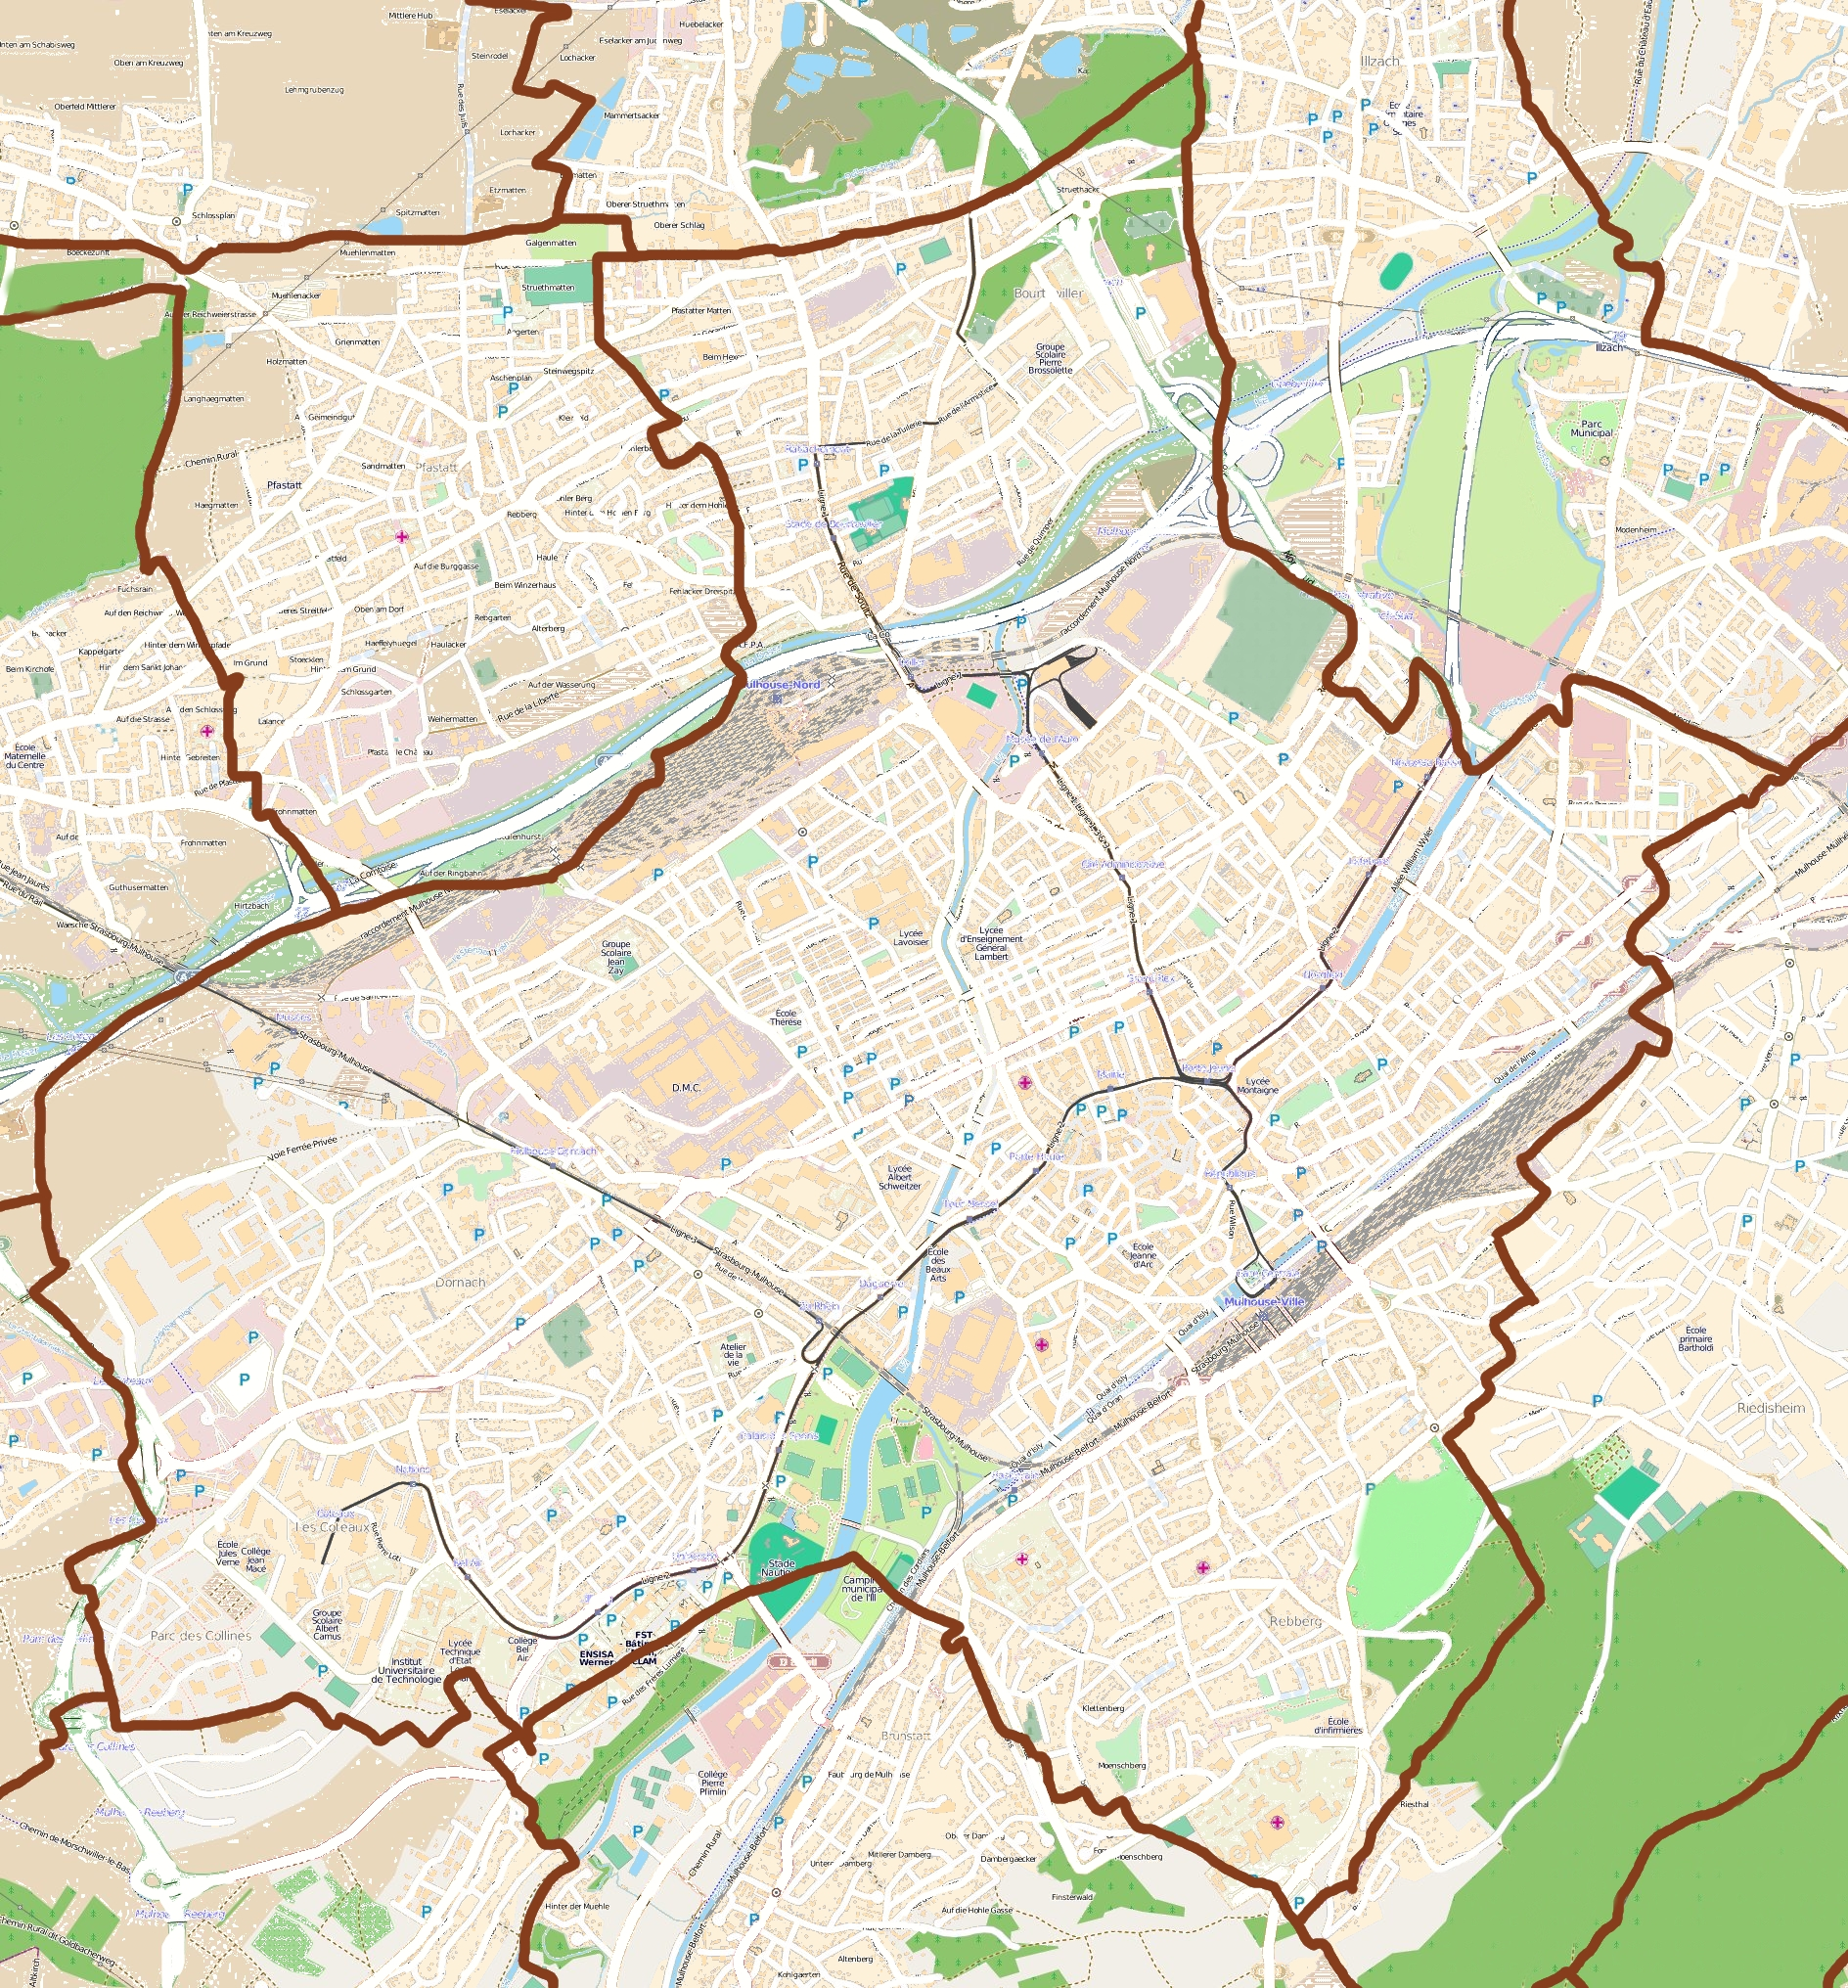 FileMap Mulhousejpg Wikimedia Commons